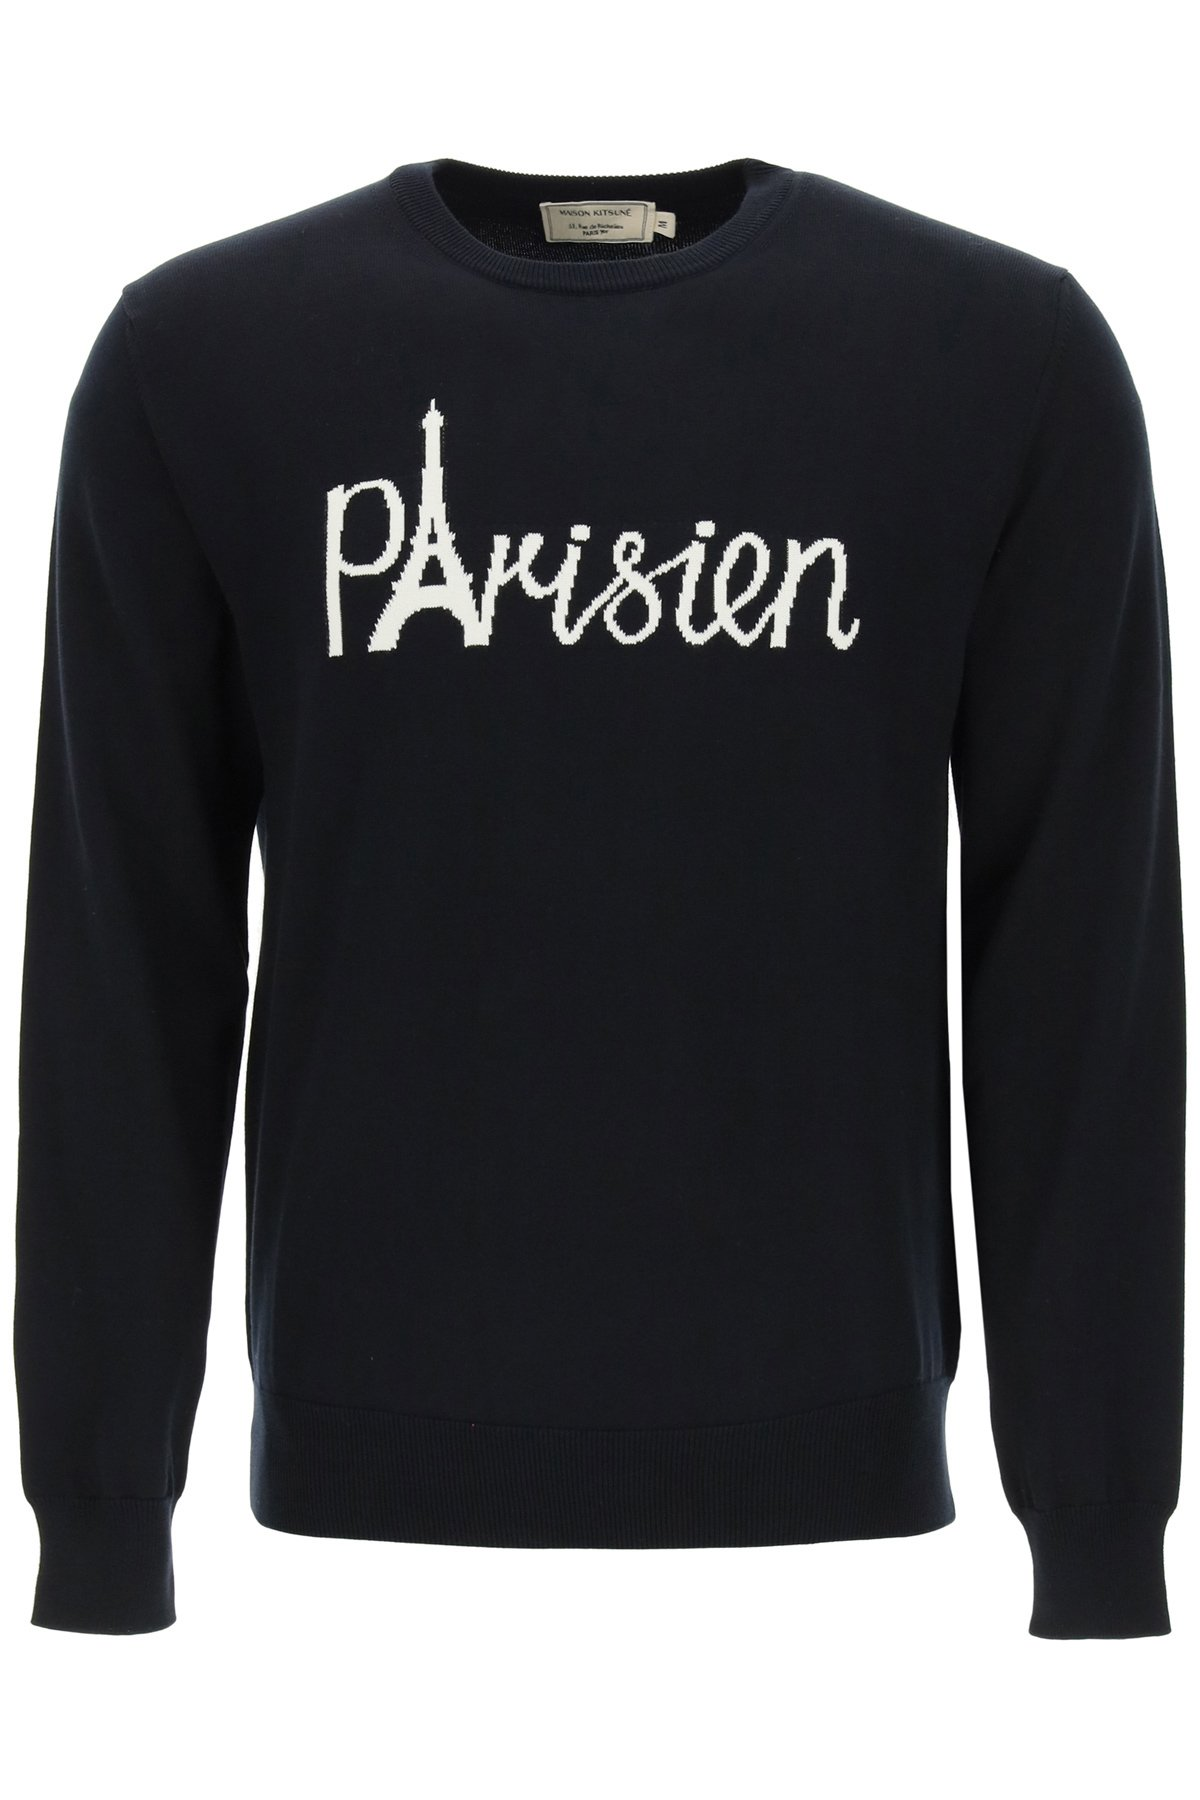 Maison kitsune parisien eiffel tower intarsia sweater